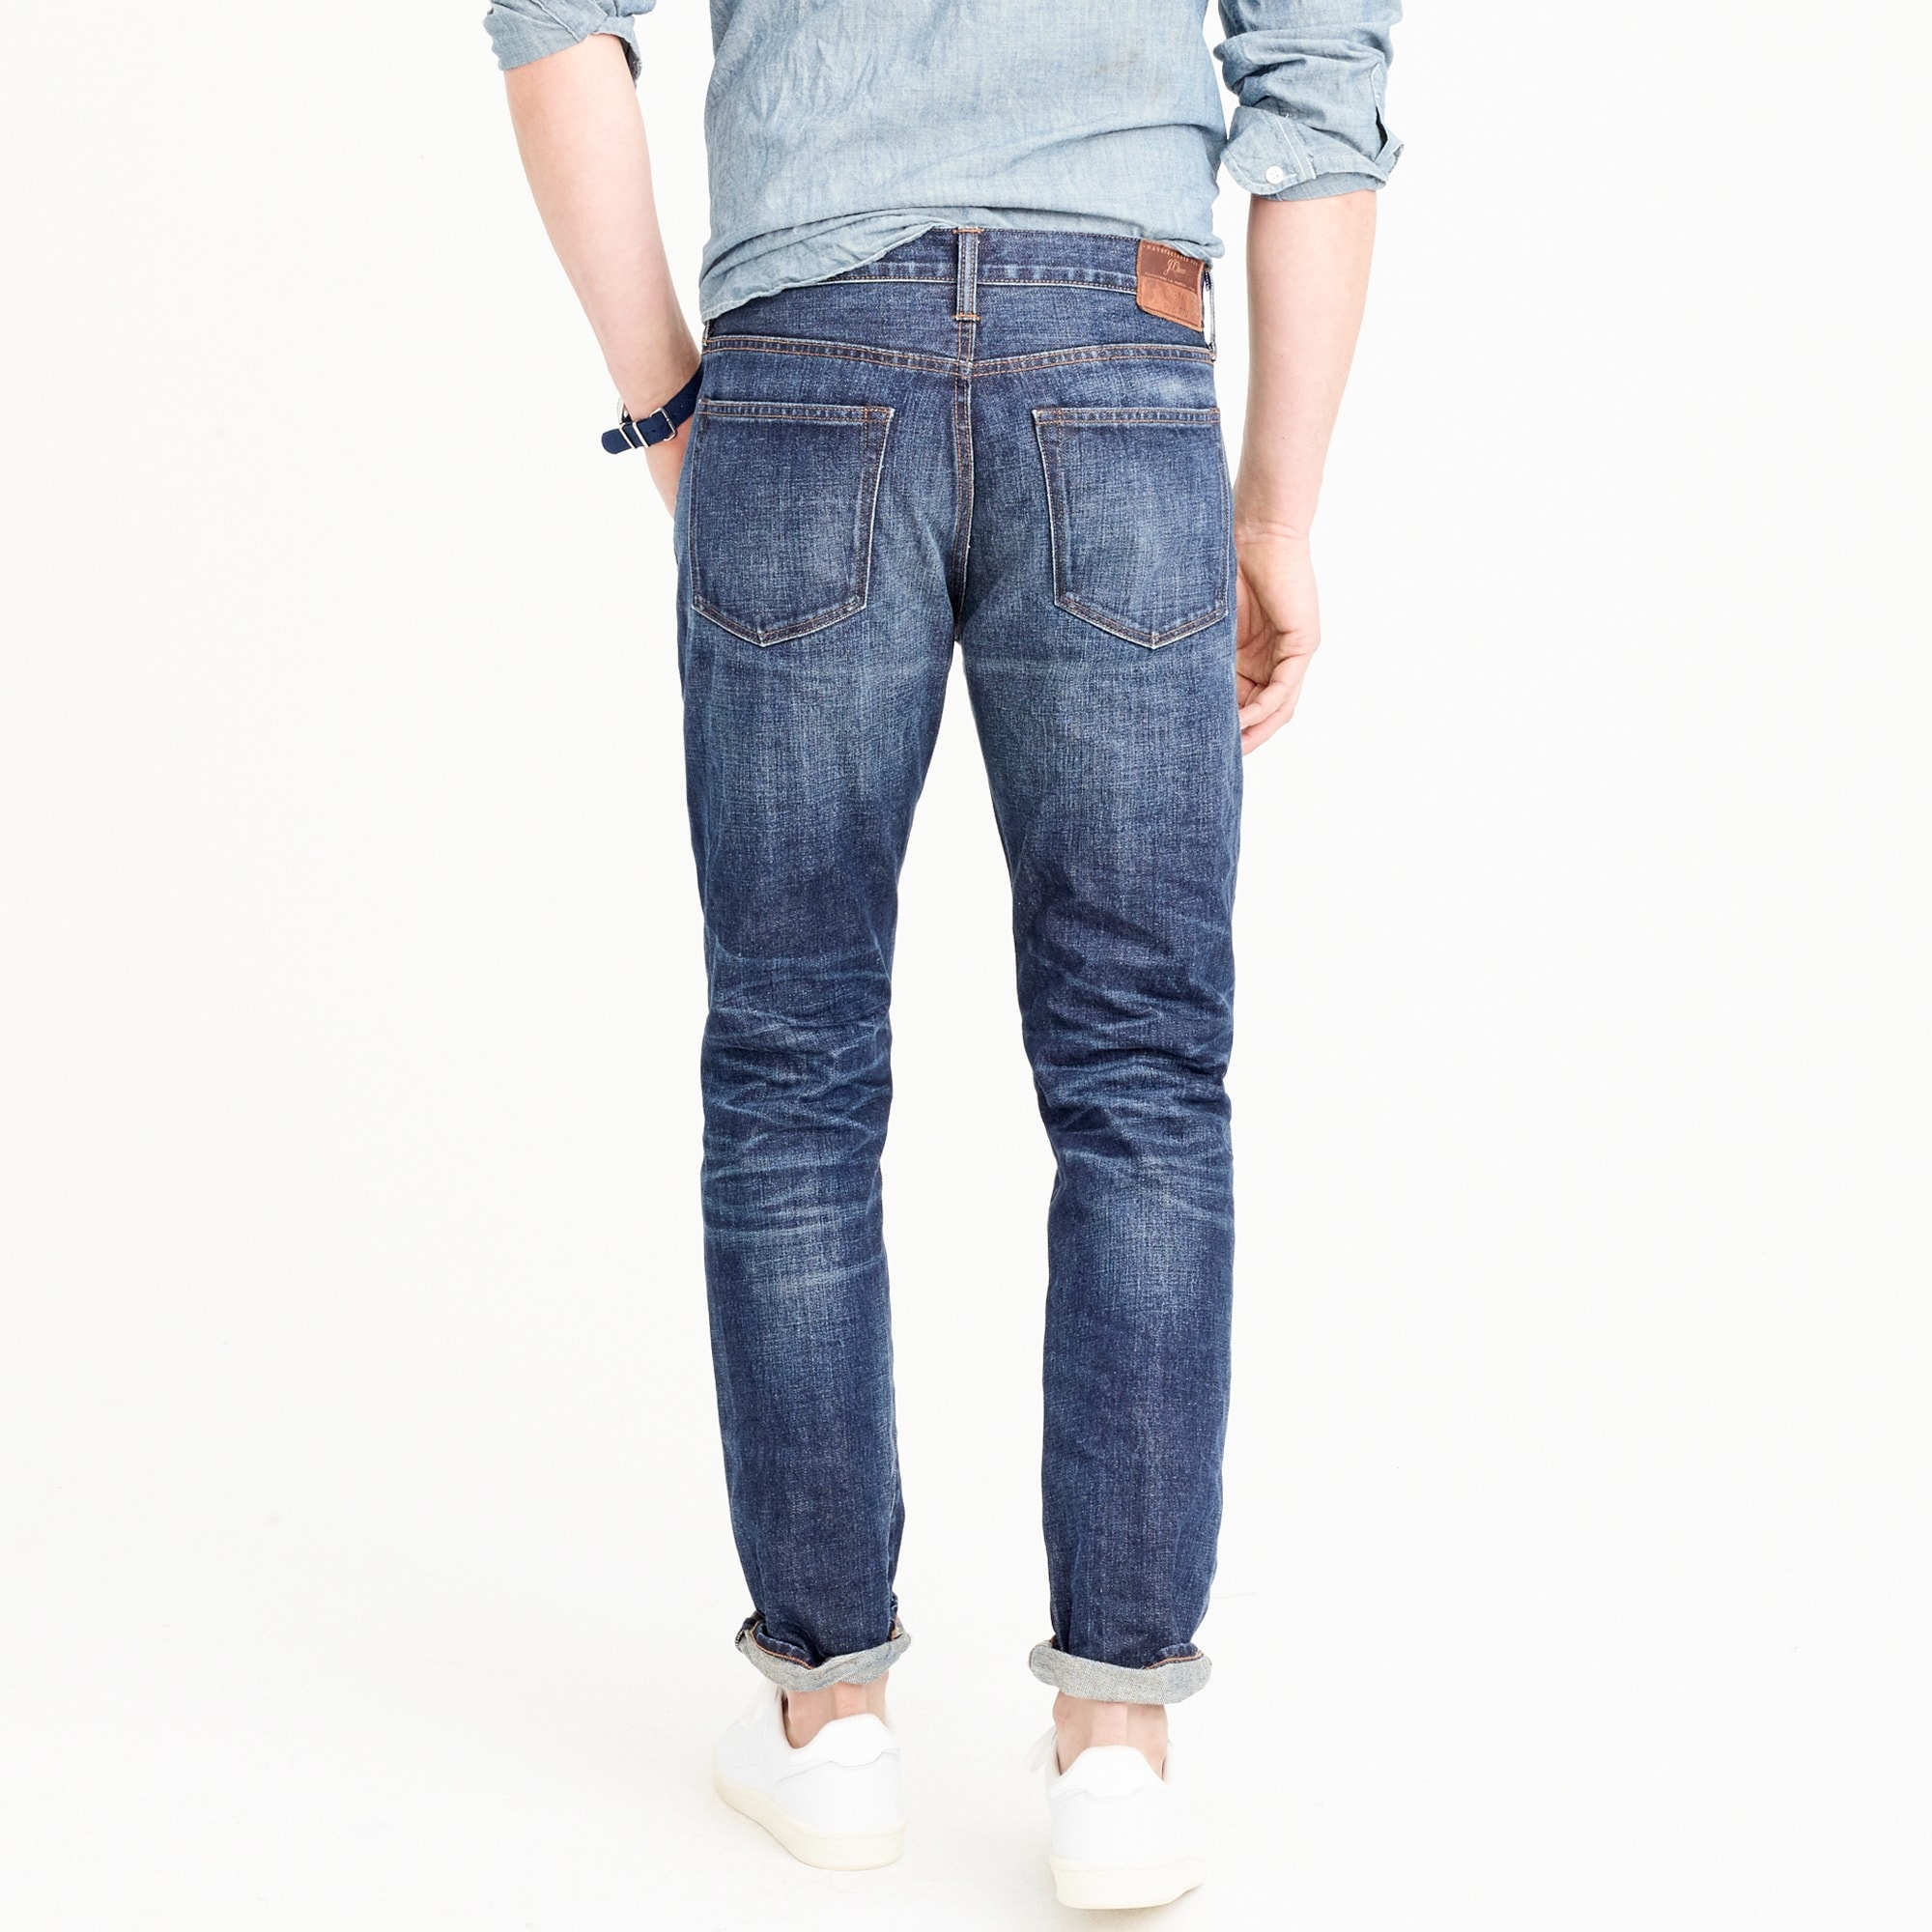 770 Straight-fit jean in Collins wash